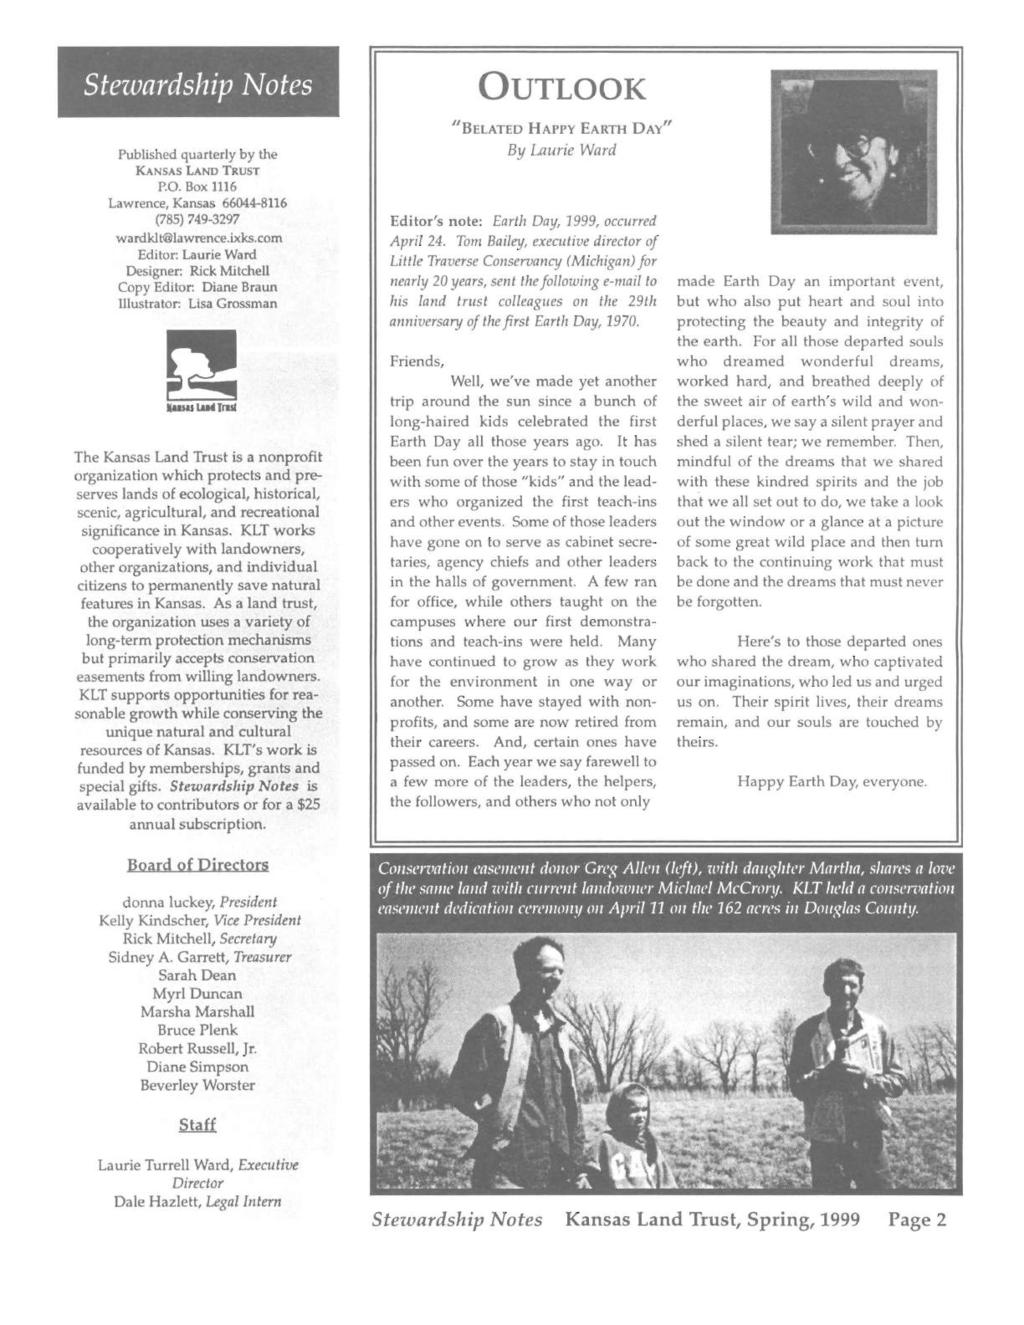 I Stezvardship ~otes OUTLOOK Published quarterly by the KANSAS LAND TRUST P.O. Box 1116 Lawrence, Kansas 66044-8116 (785) 749-3297 wardklt lawrence.ixks.